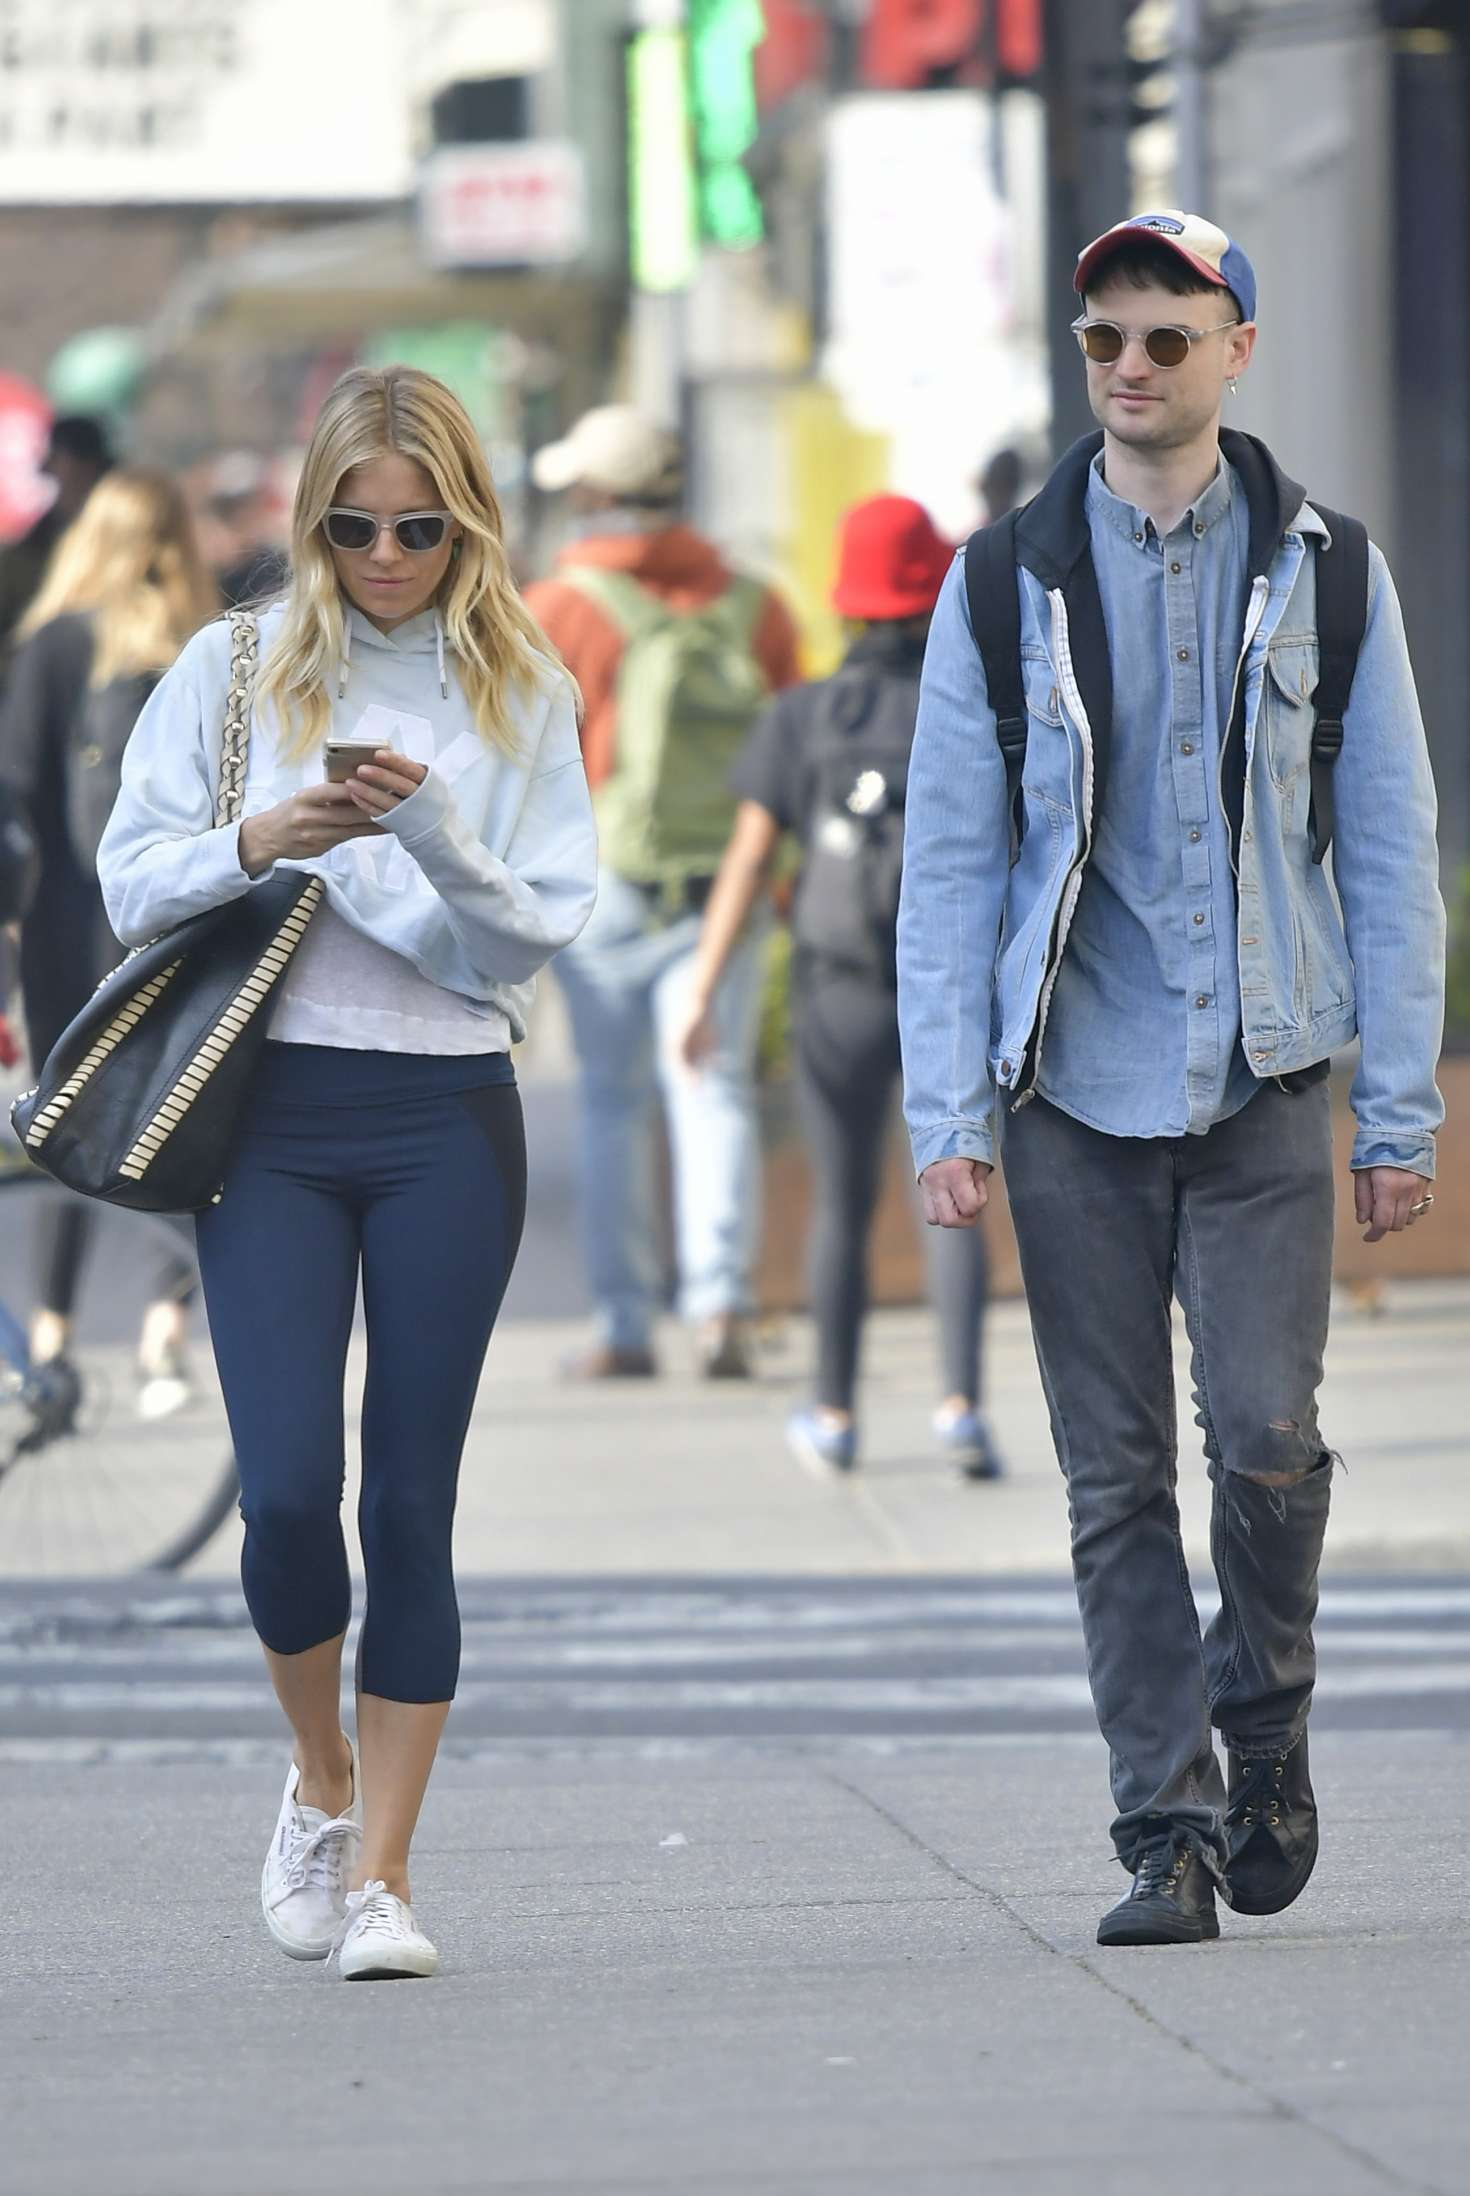 Sienna Miller and Tom Sturridge out in New York City -10